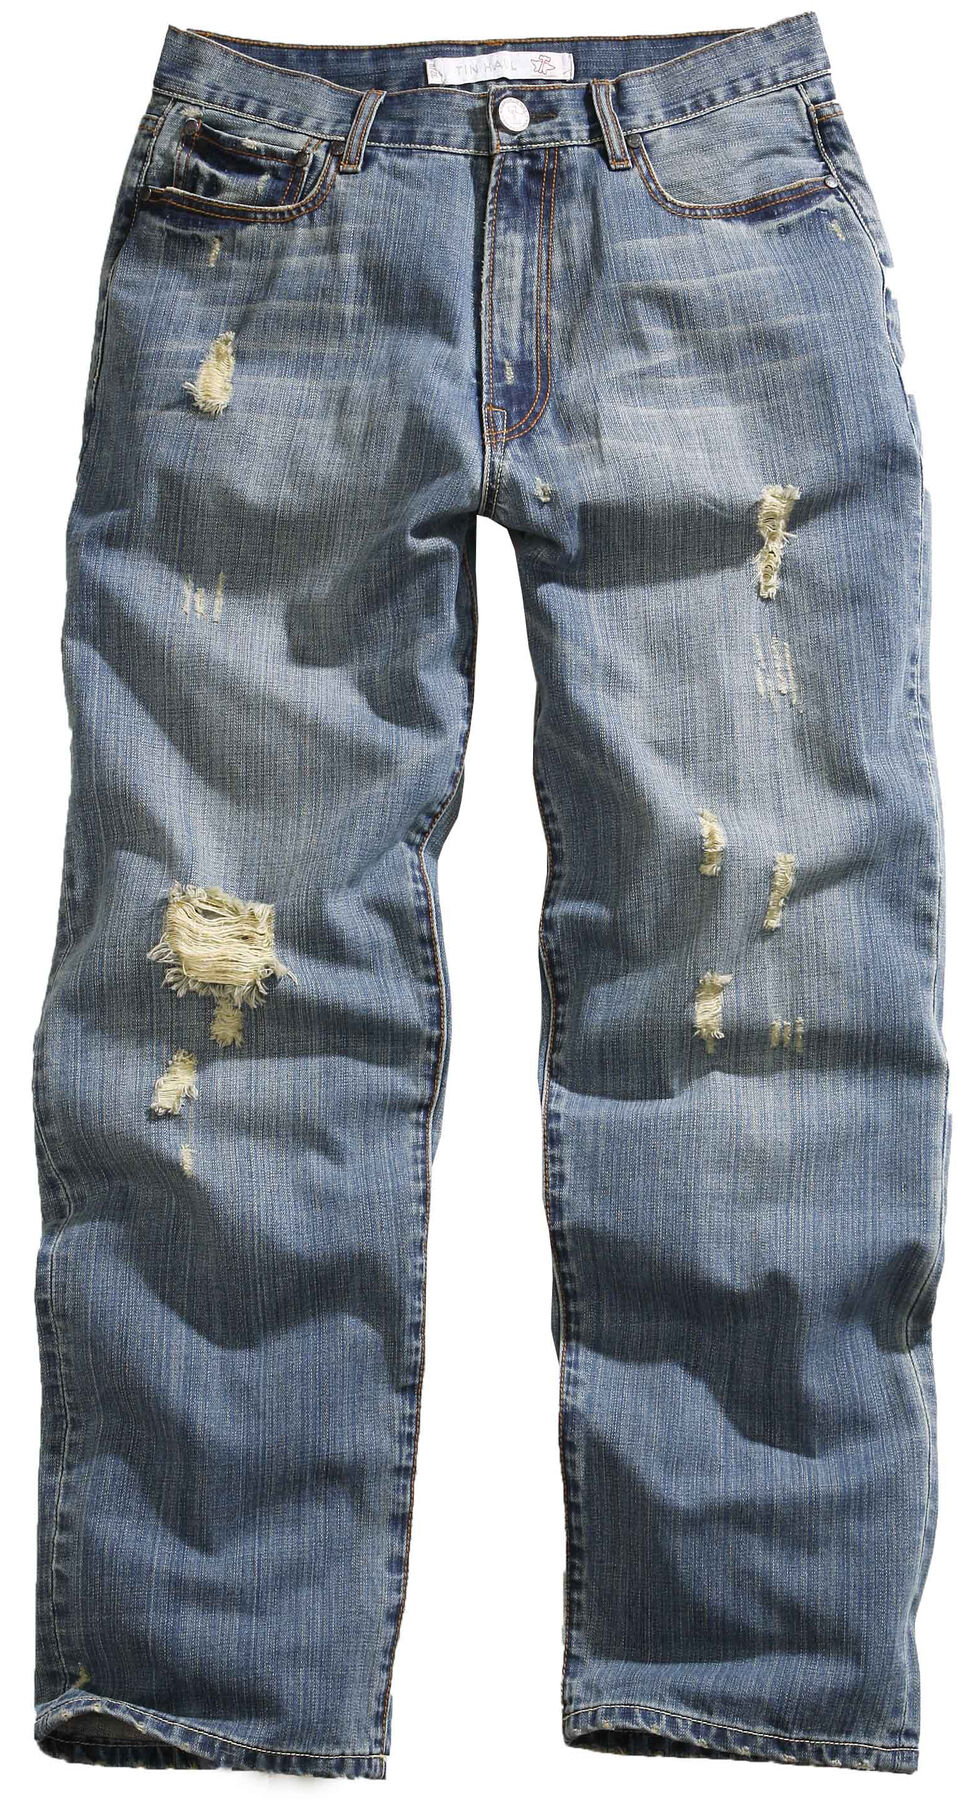 Tin Haul Men's Hoss Heavy Destruction Loose Fit Straight Leg Jeans, Denim, hi-res